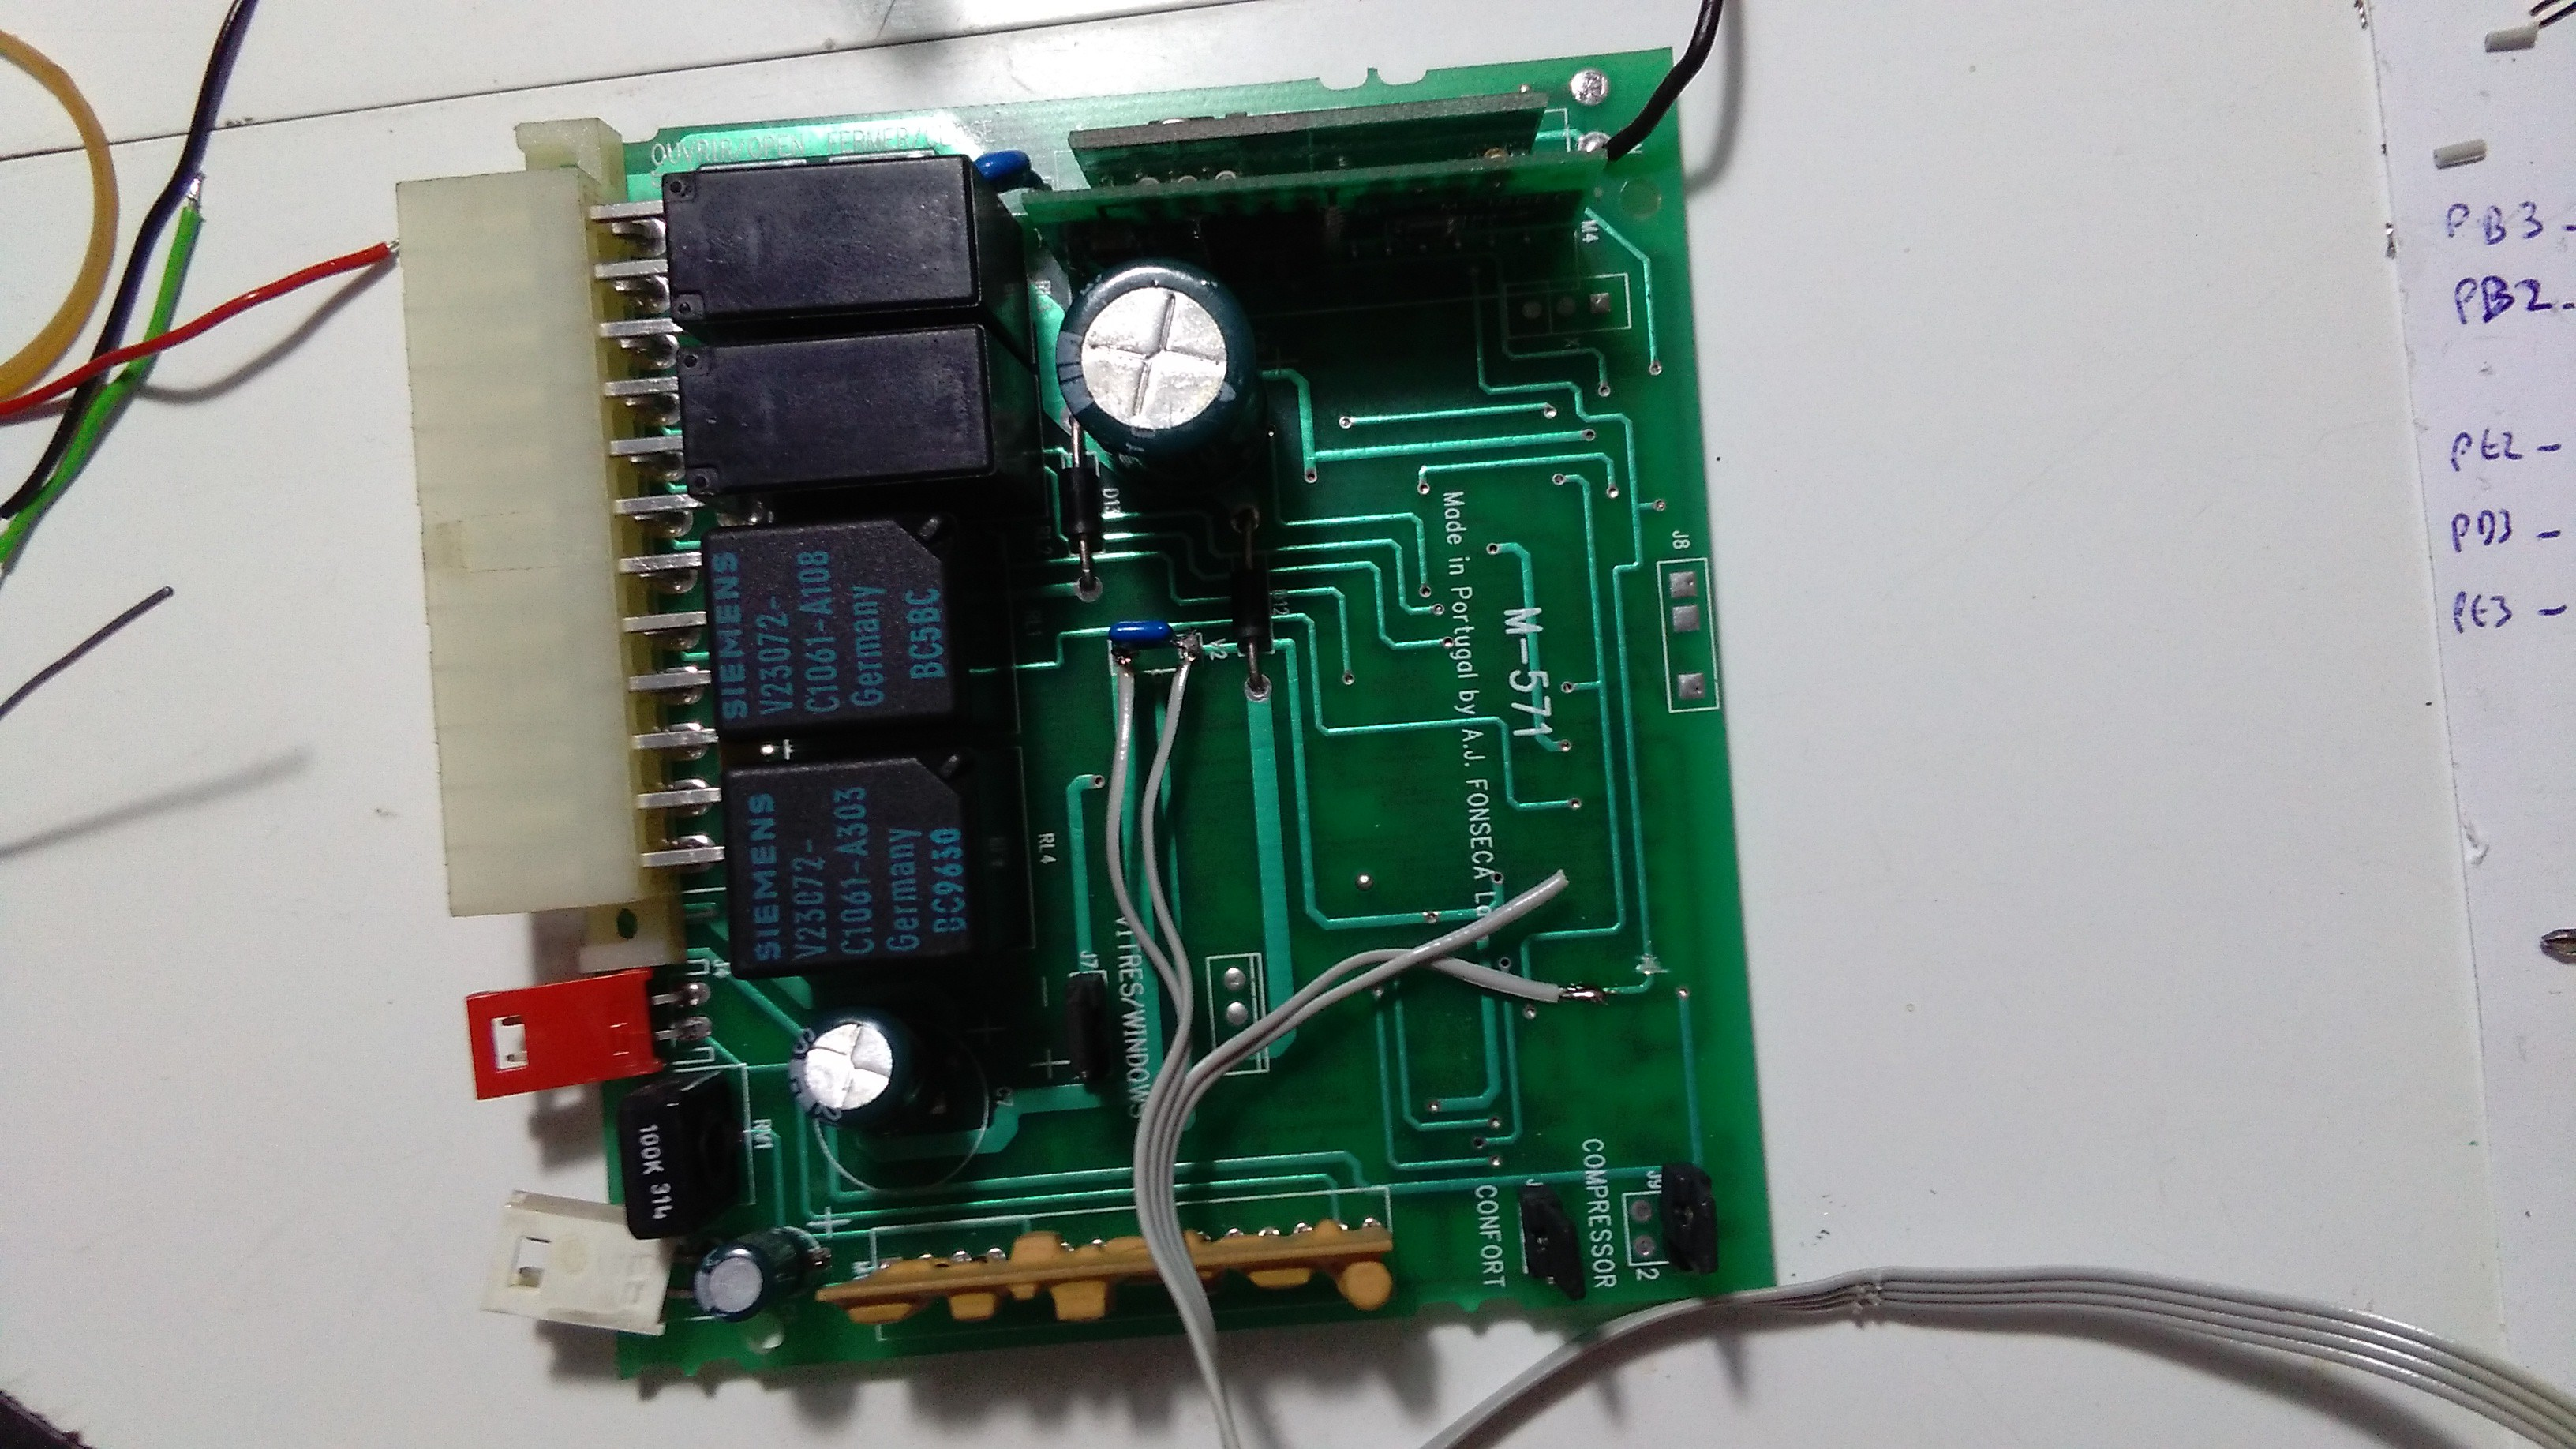 Car Alarm Secure Remote With Nrf24le1 Wiring Diagram 9 Pin After This I Assembled It On The And Voila Works